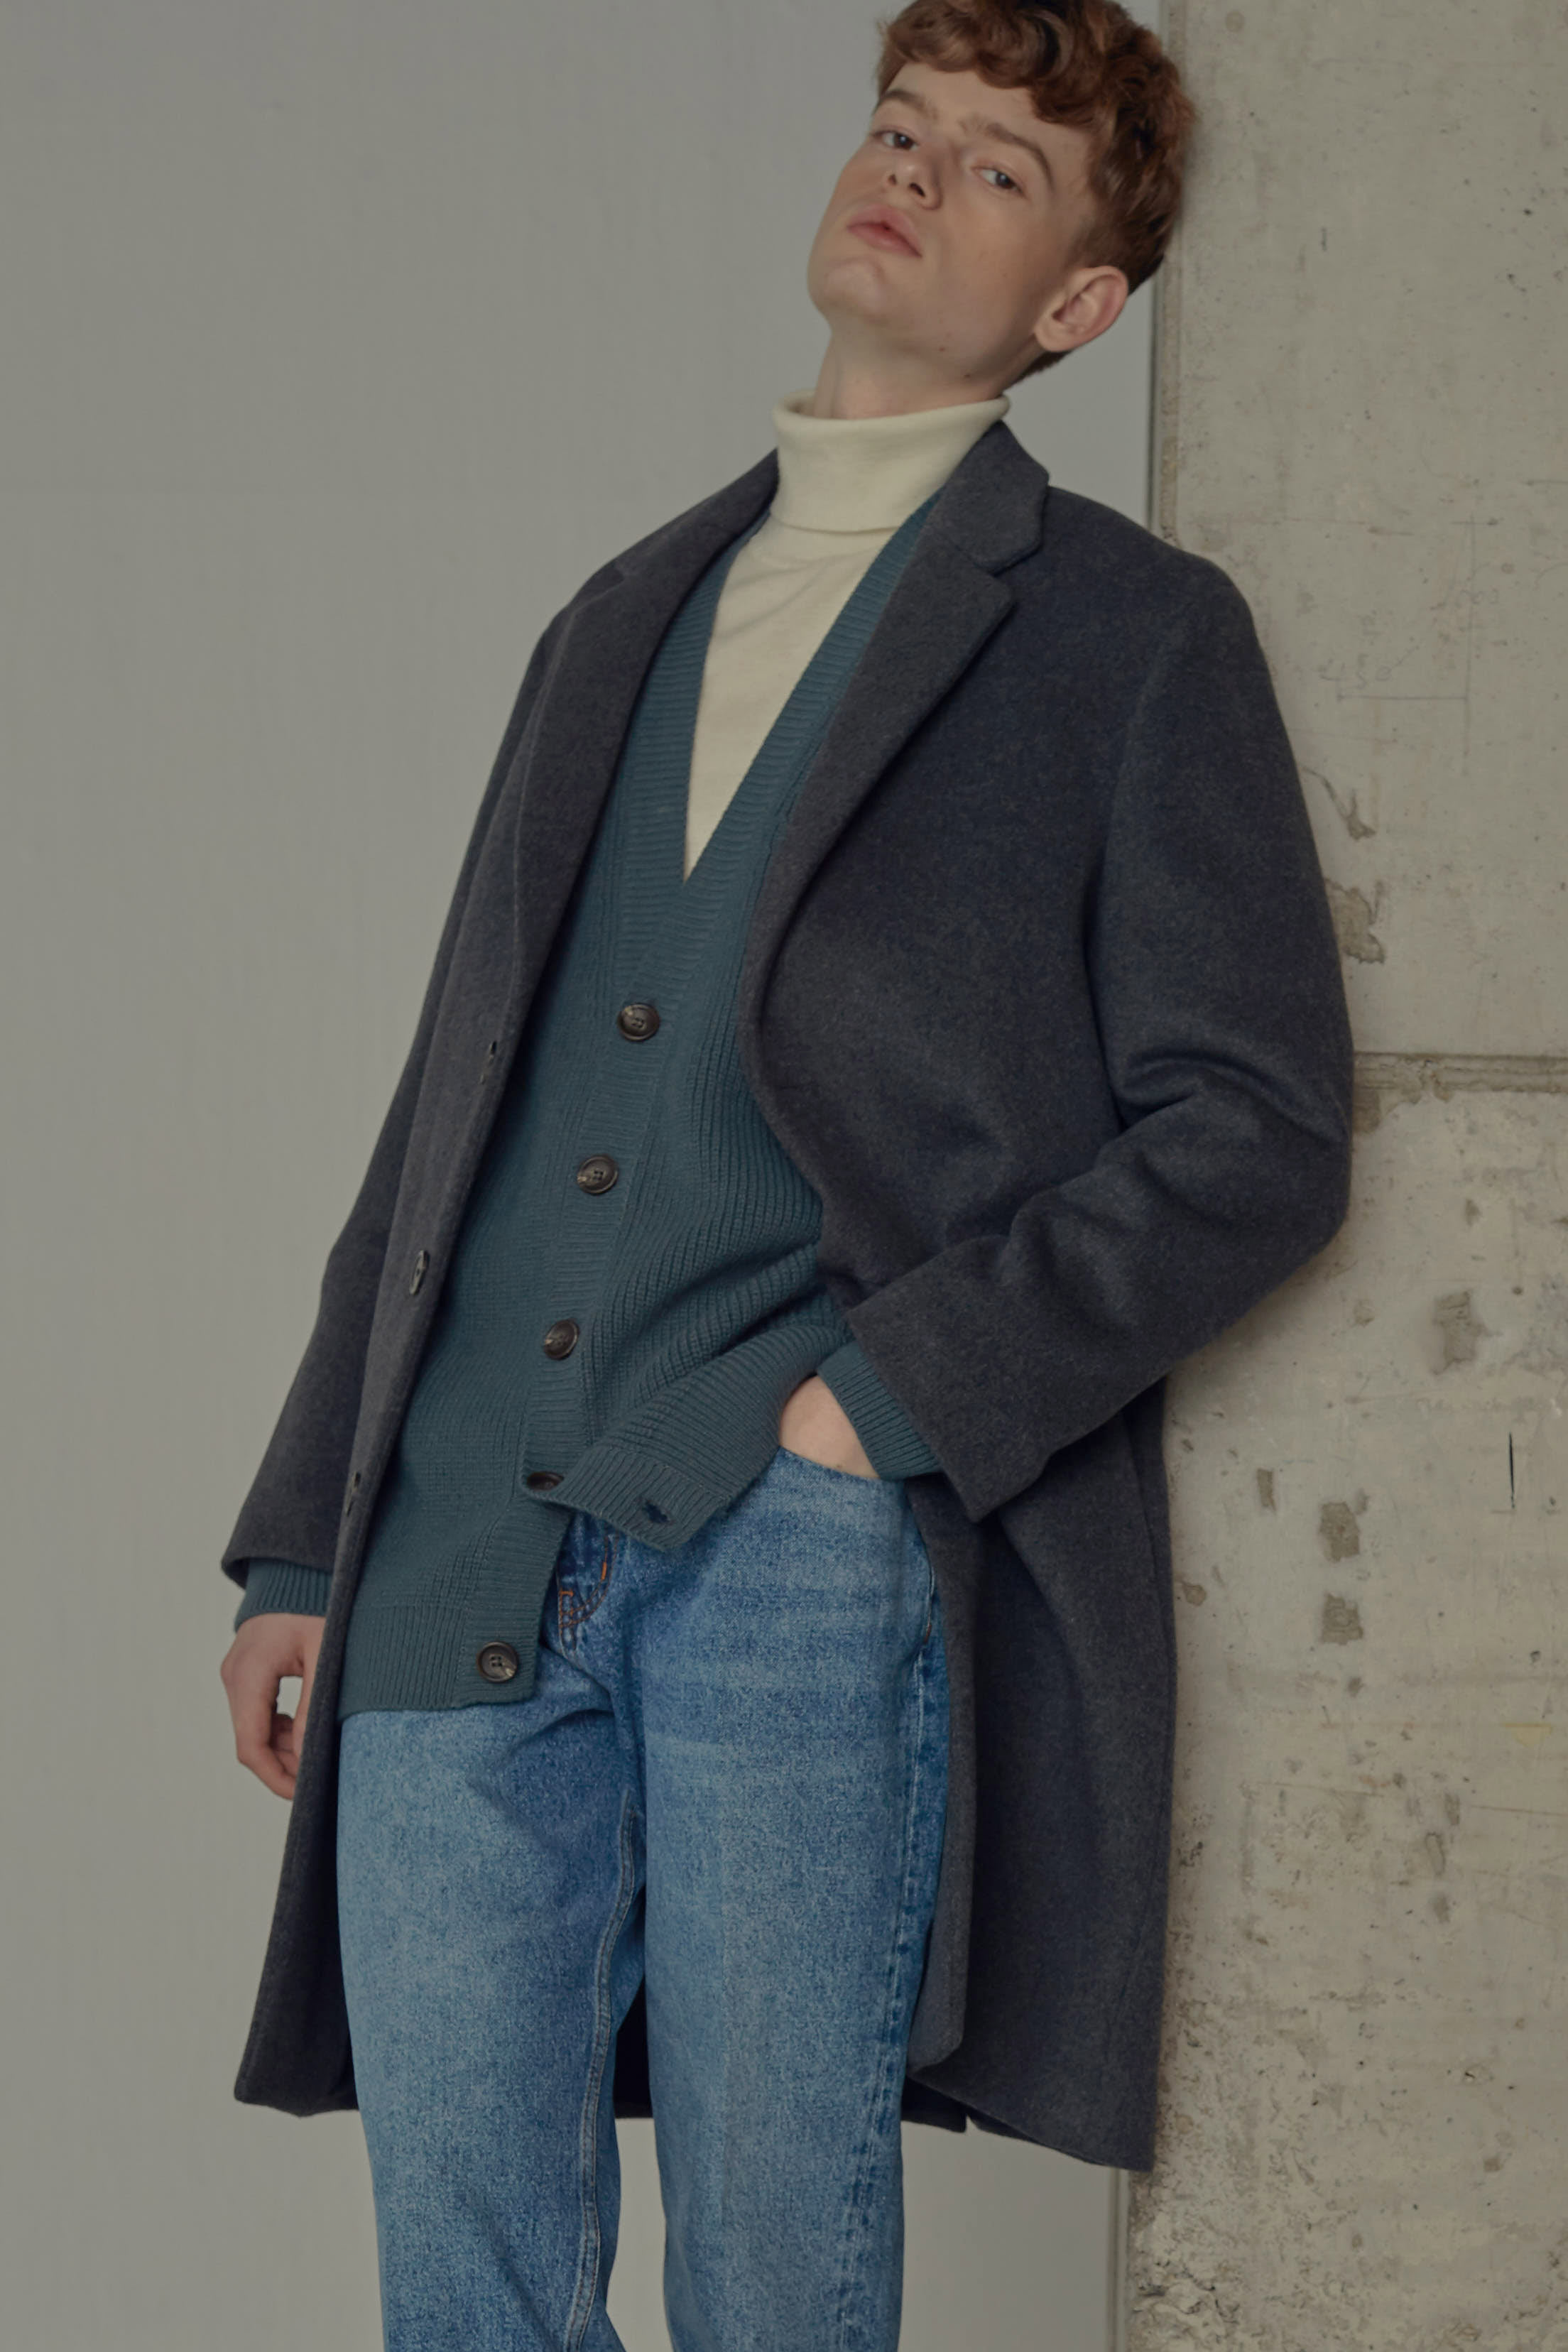 5차 재입고 완료2019 THE EASY COAT (CHARCOAL, cashmere blended)